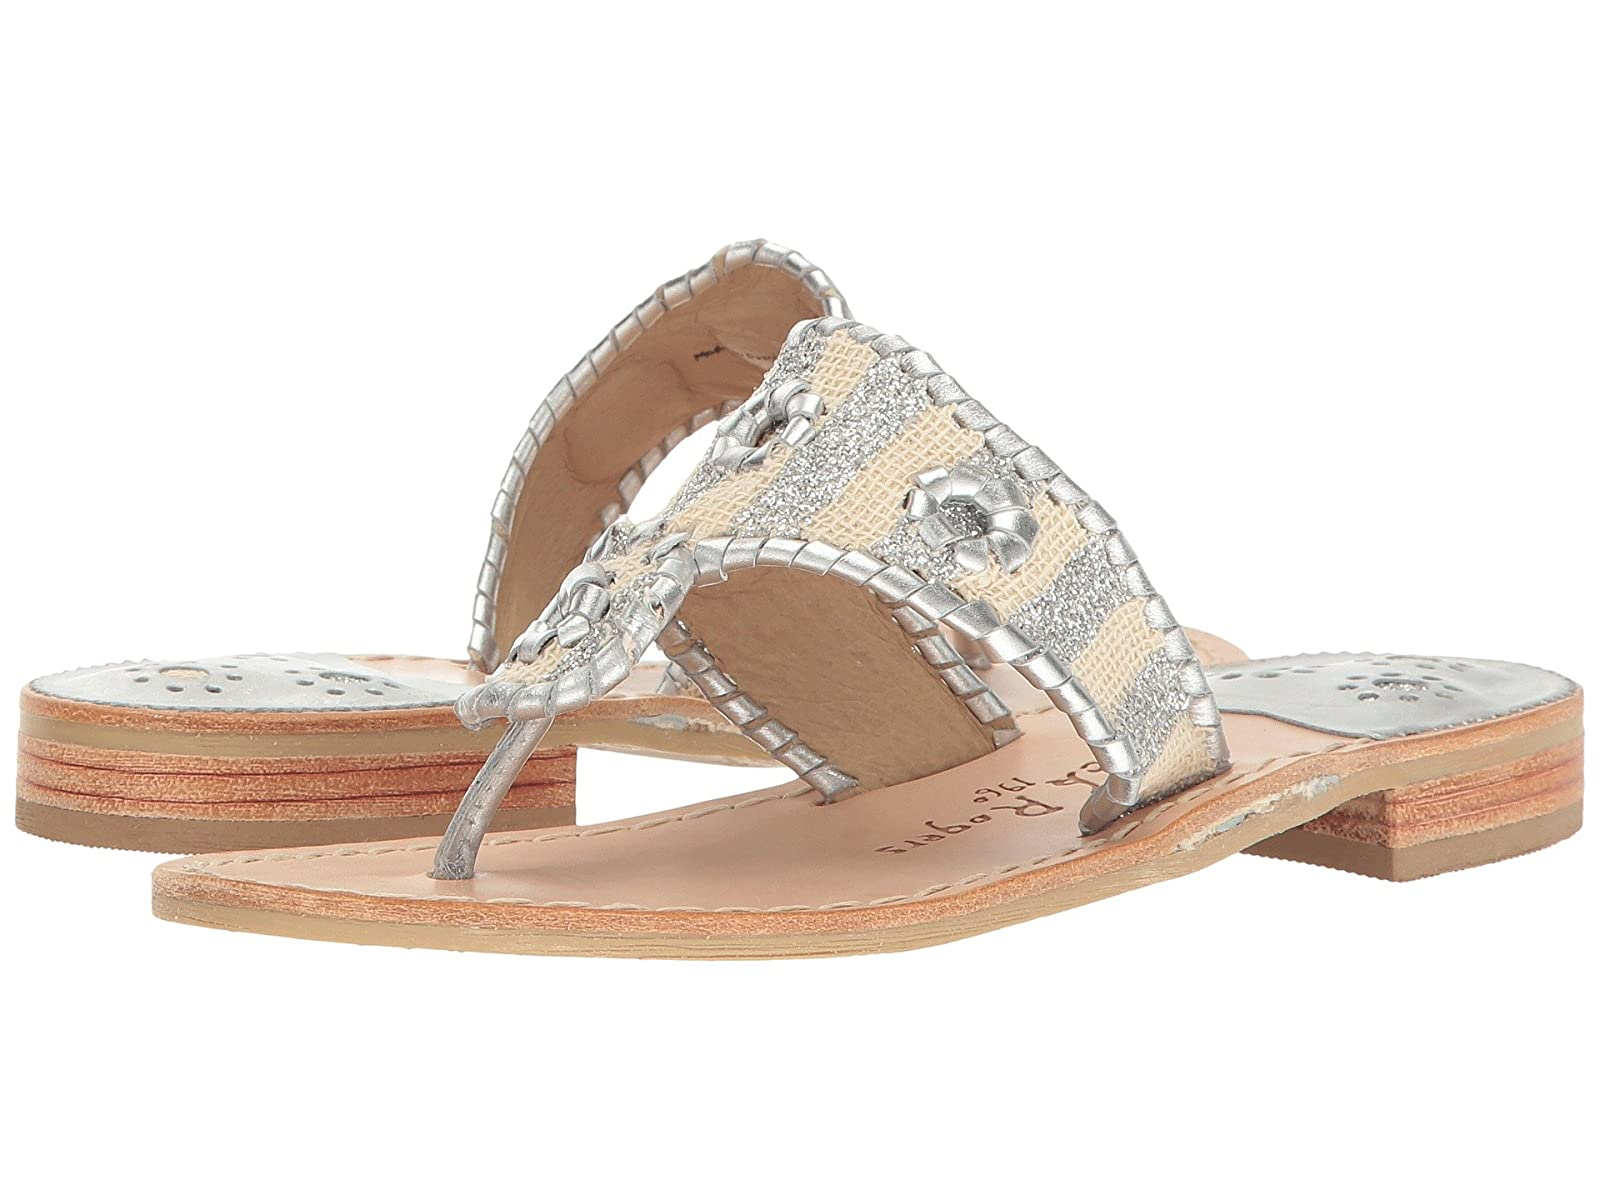 Jack Rogers MarianCheap and distinctive eye-catching shoes